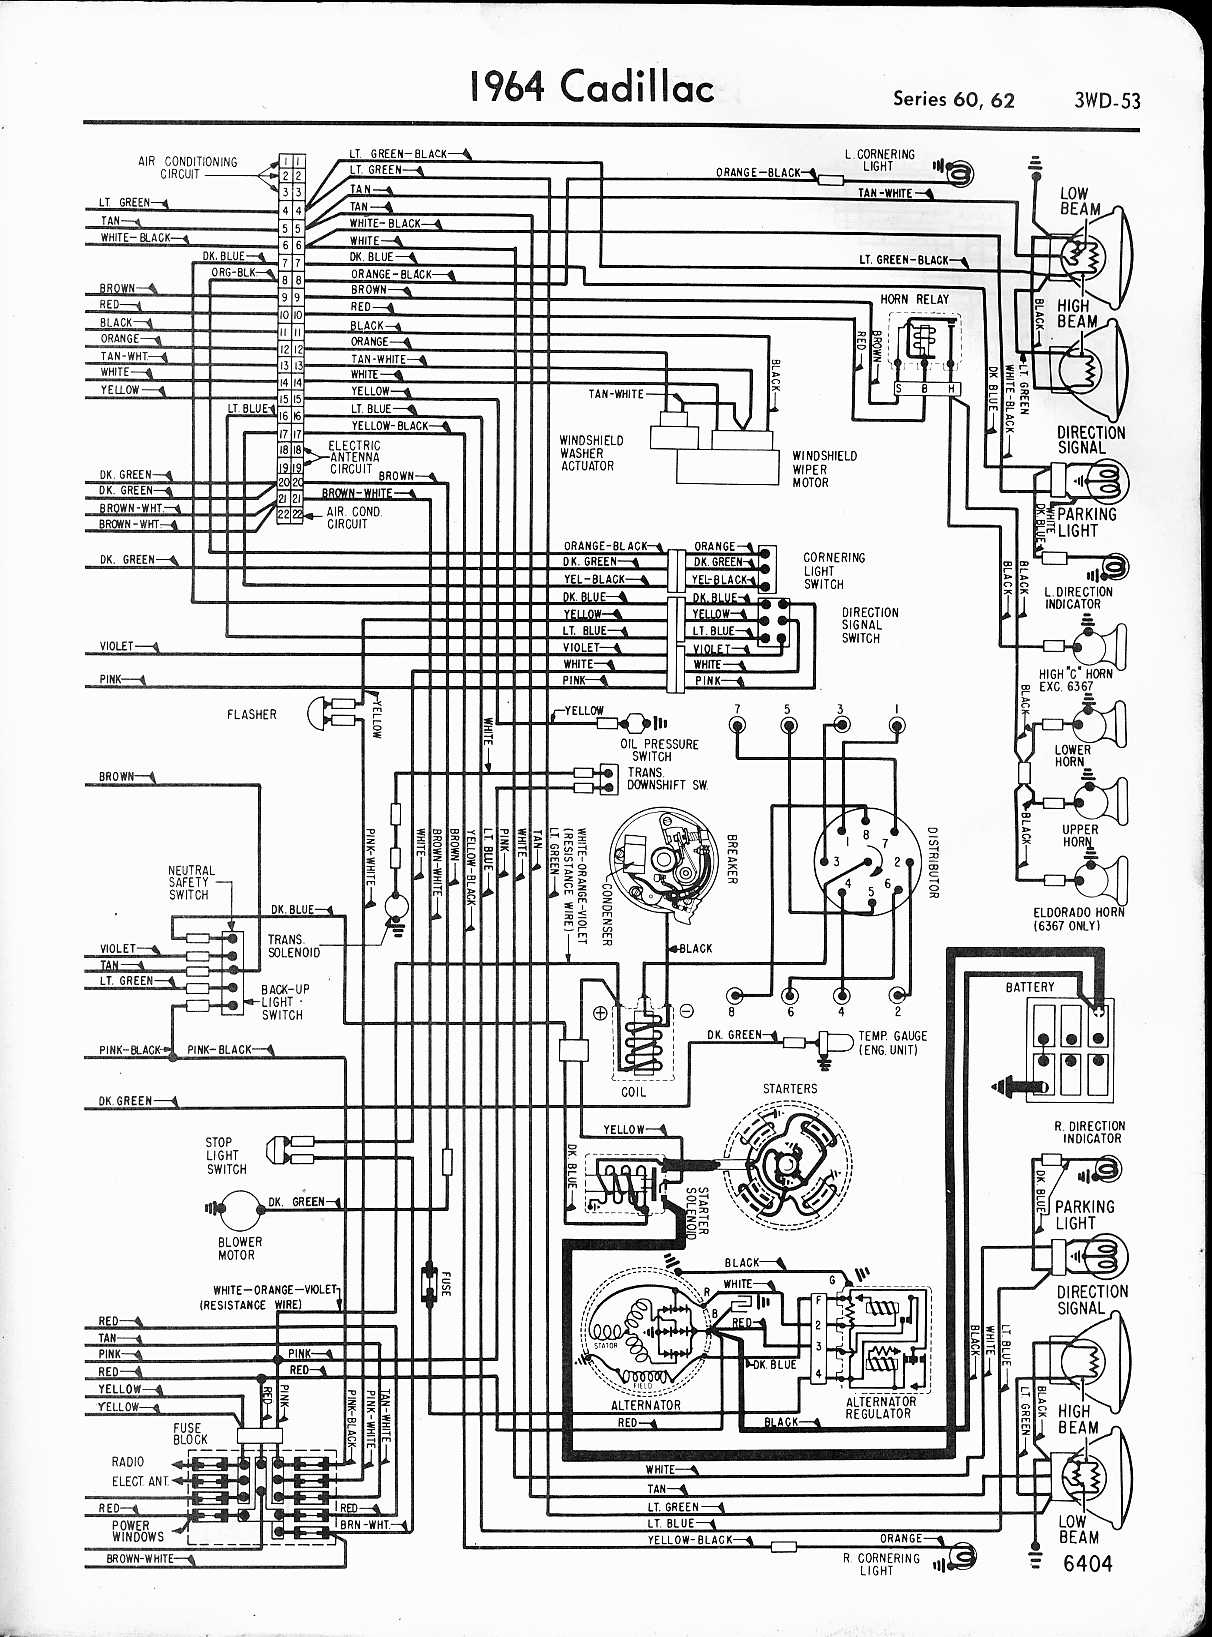 1966 Cadillac Wiring Diagram - Wiring Diagrams on 1991 cadillac deville engine, 1991 cadillac sedan deville parts, 1991 toyota mr2 wiring-diagram, 1991 cadillac deville no speedometer, 1991 plymouth voyager wiring-diagram, 1991 ford festiva wiring-diagram,